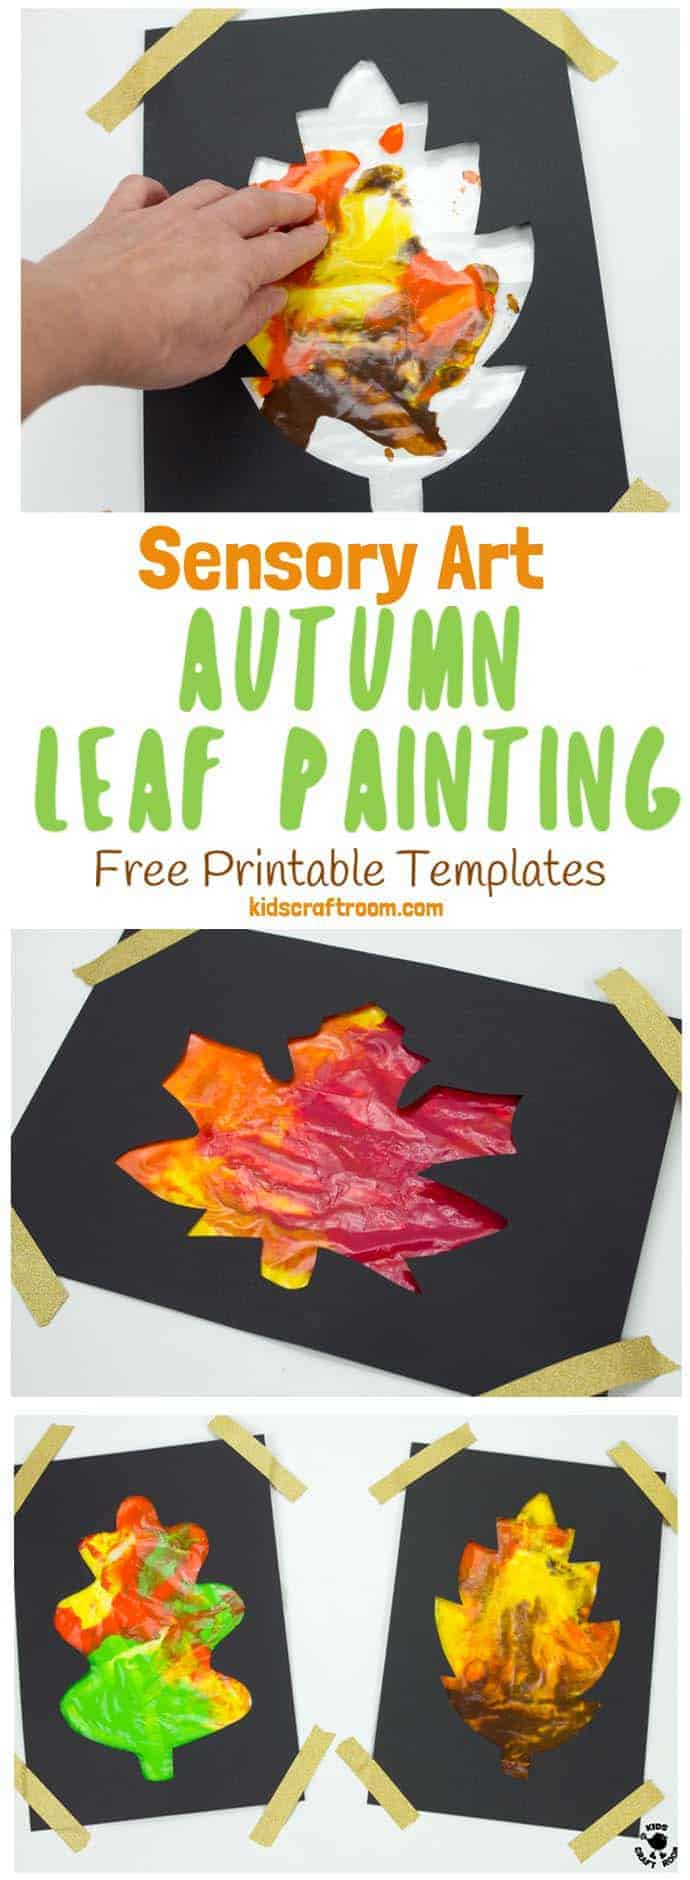 Mess Free Sensory Autumn Leaf Painting is a wonderful activity to explore the changing colours of the season and engage the senses.Kids can watch leaves change colour right in front of their eyes with this hands-on Autumn art idea. (6 Free Printable Leaf Templates) #autumn #fall #autumncrafts #fallcrafts #autumnart #fallart #kidscrafts #kidsart #fallactivities #autumnactivities #sensory #sensoryplay #sensoryart #painting #kidspainting #kidscraftroom